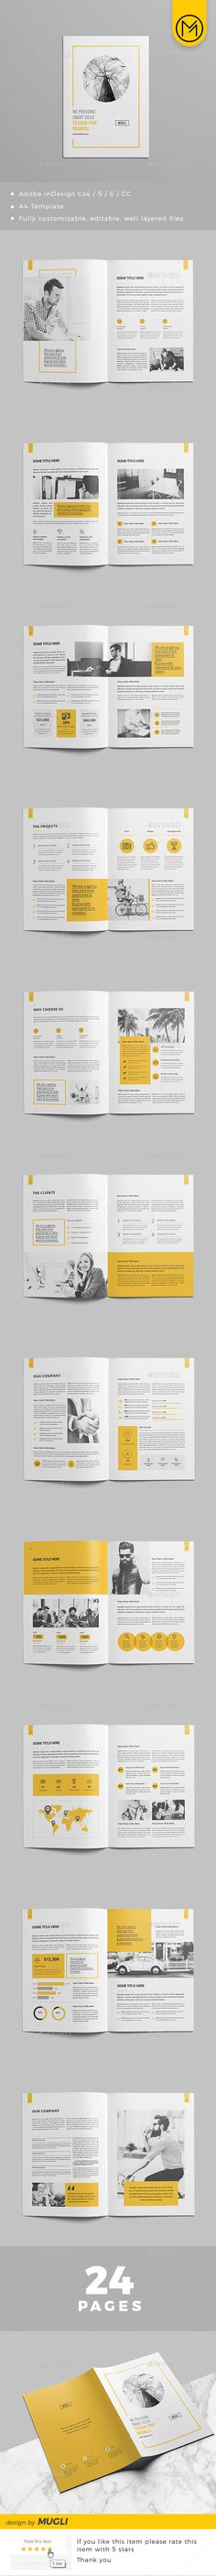 Corporate Brochure Design 2018 — InDesign INDD #project proposal #corporate • Download ➝ https://graphicriver.net/item/corporate-brochure-design-2018/21190152?ref=pxcr